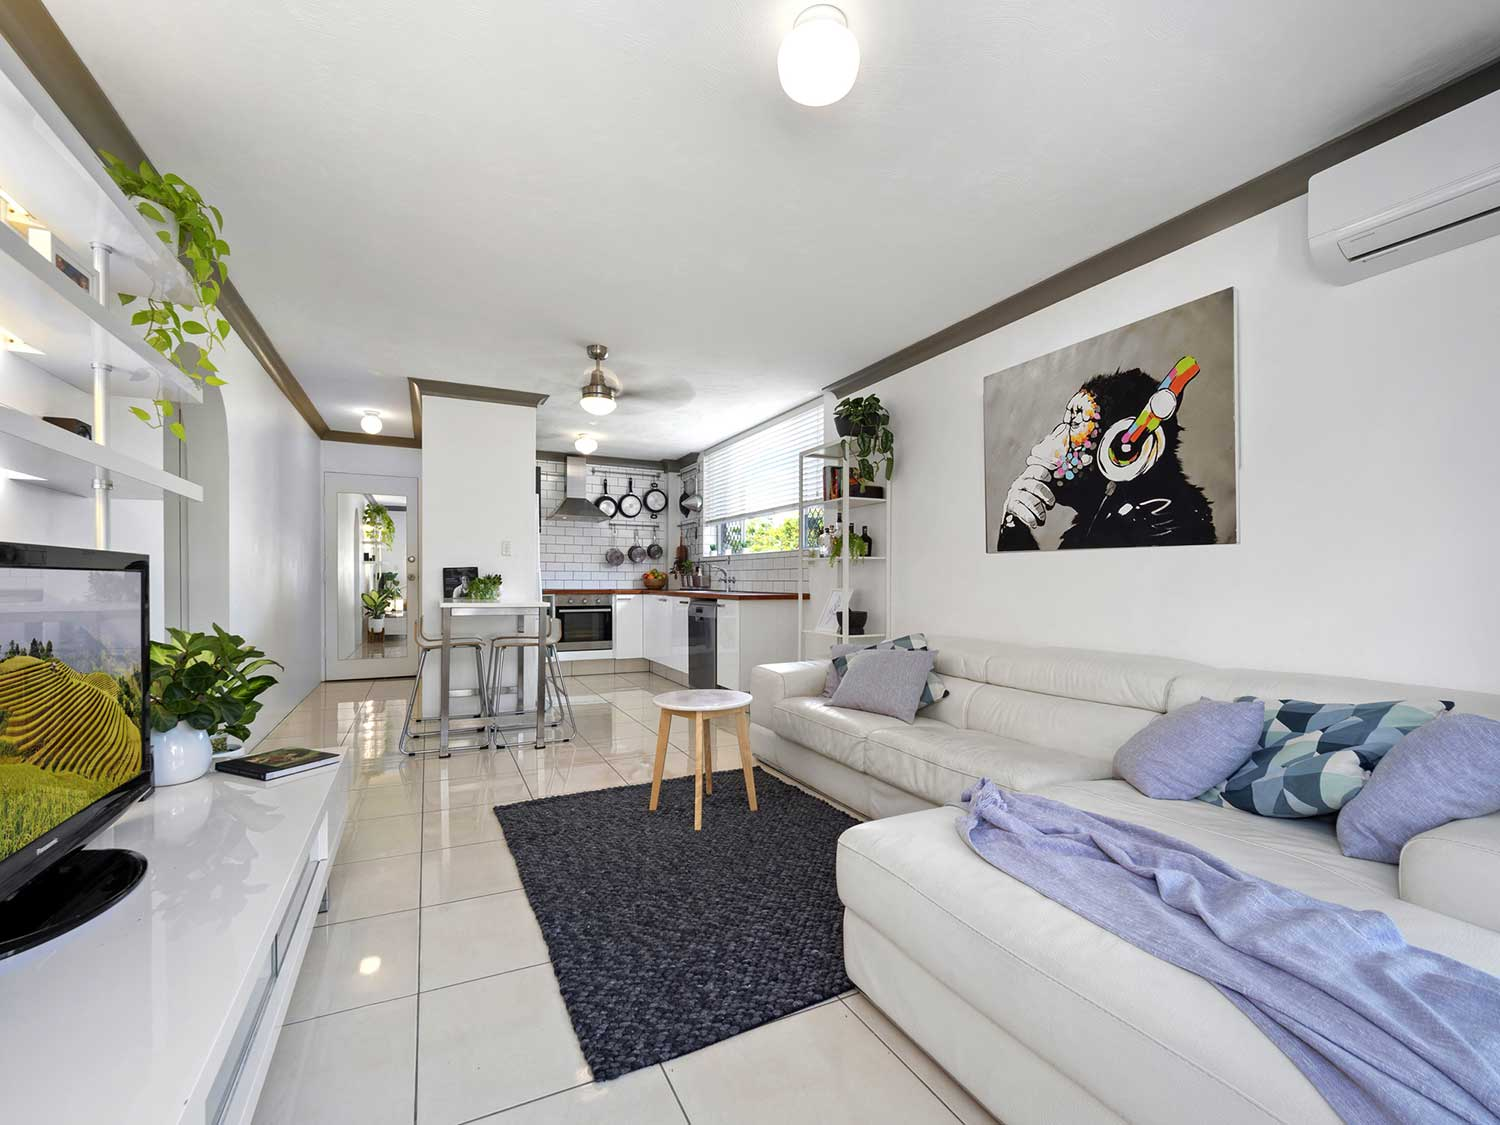 Apartment photography at Nundah